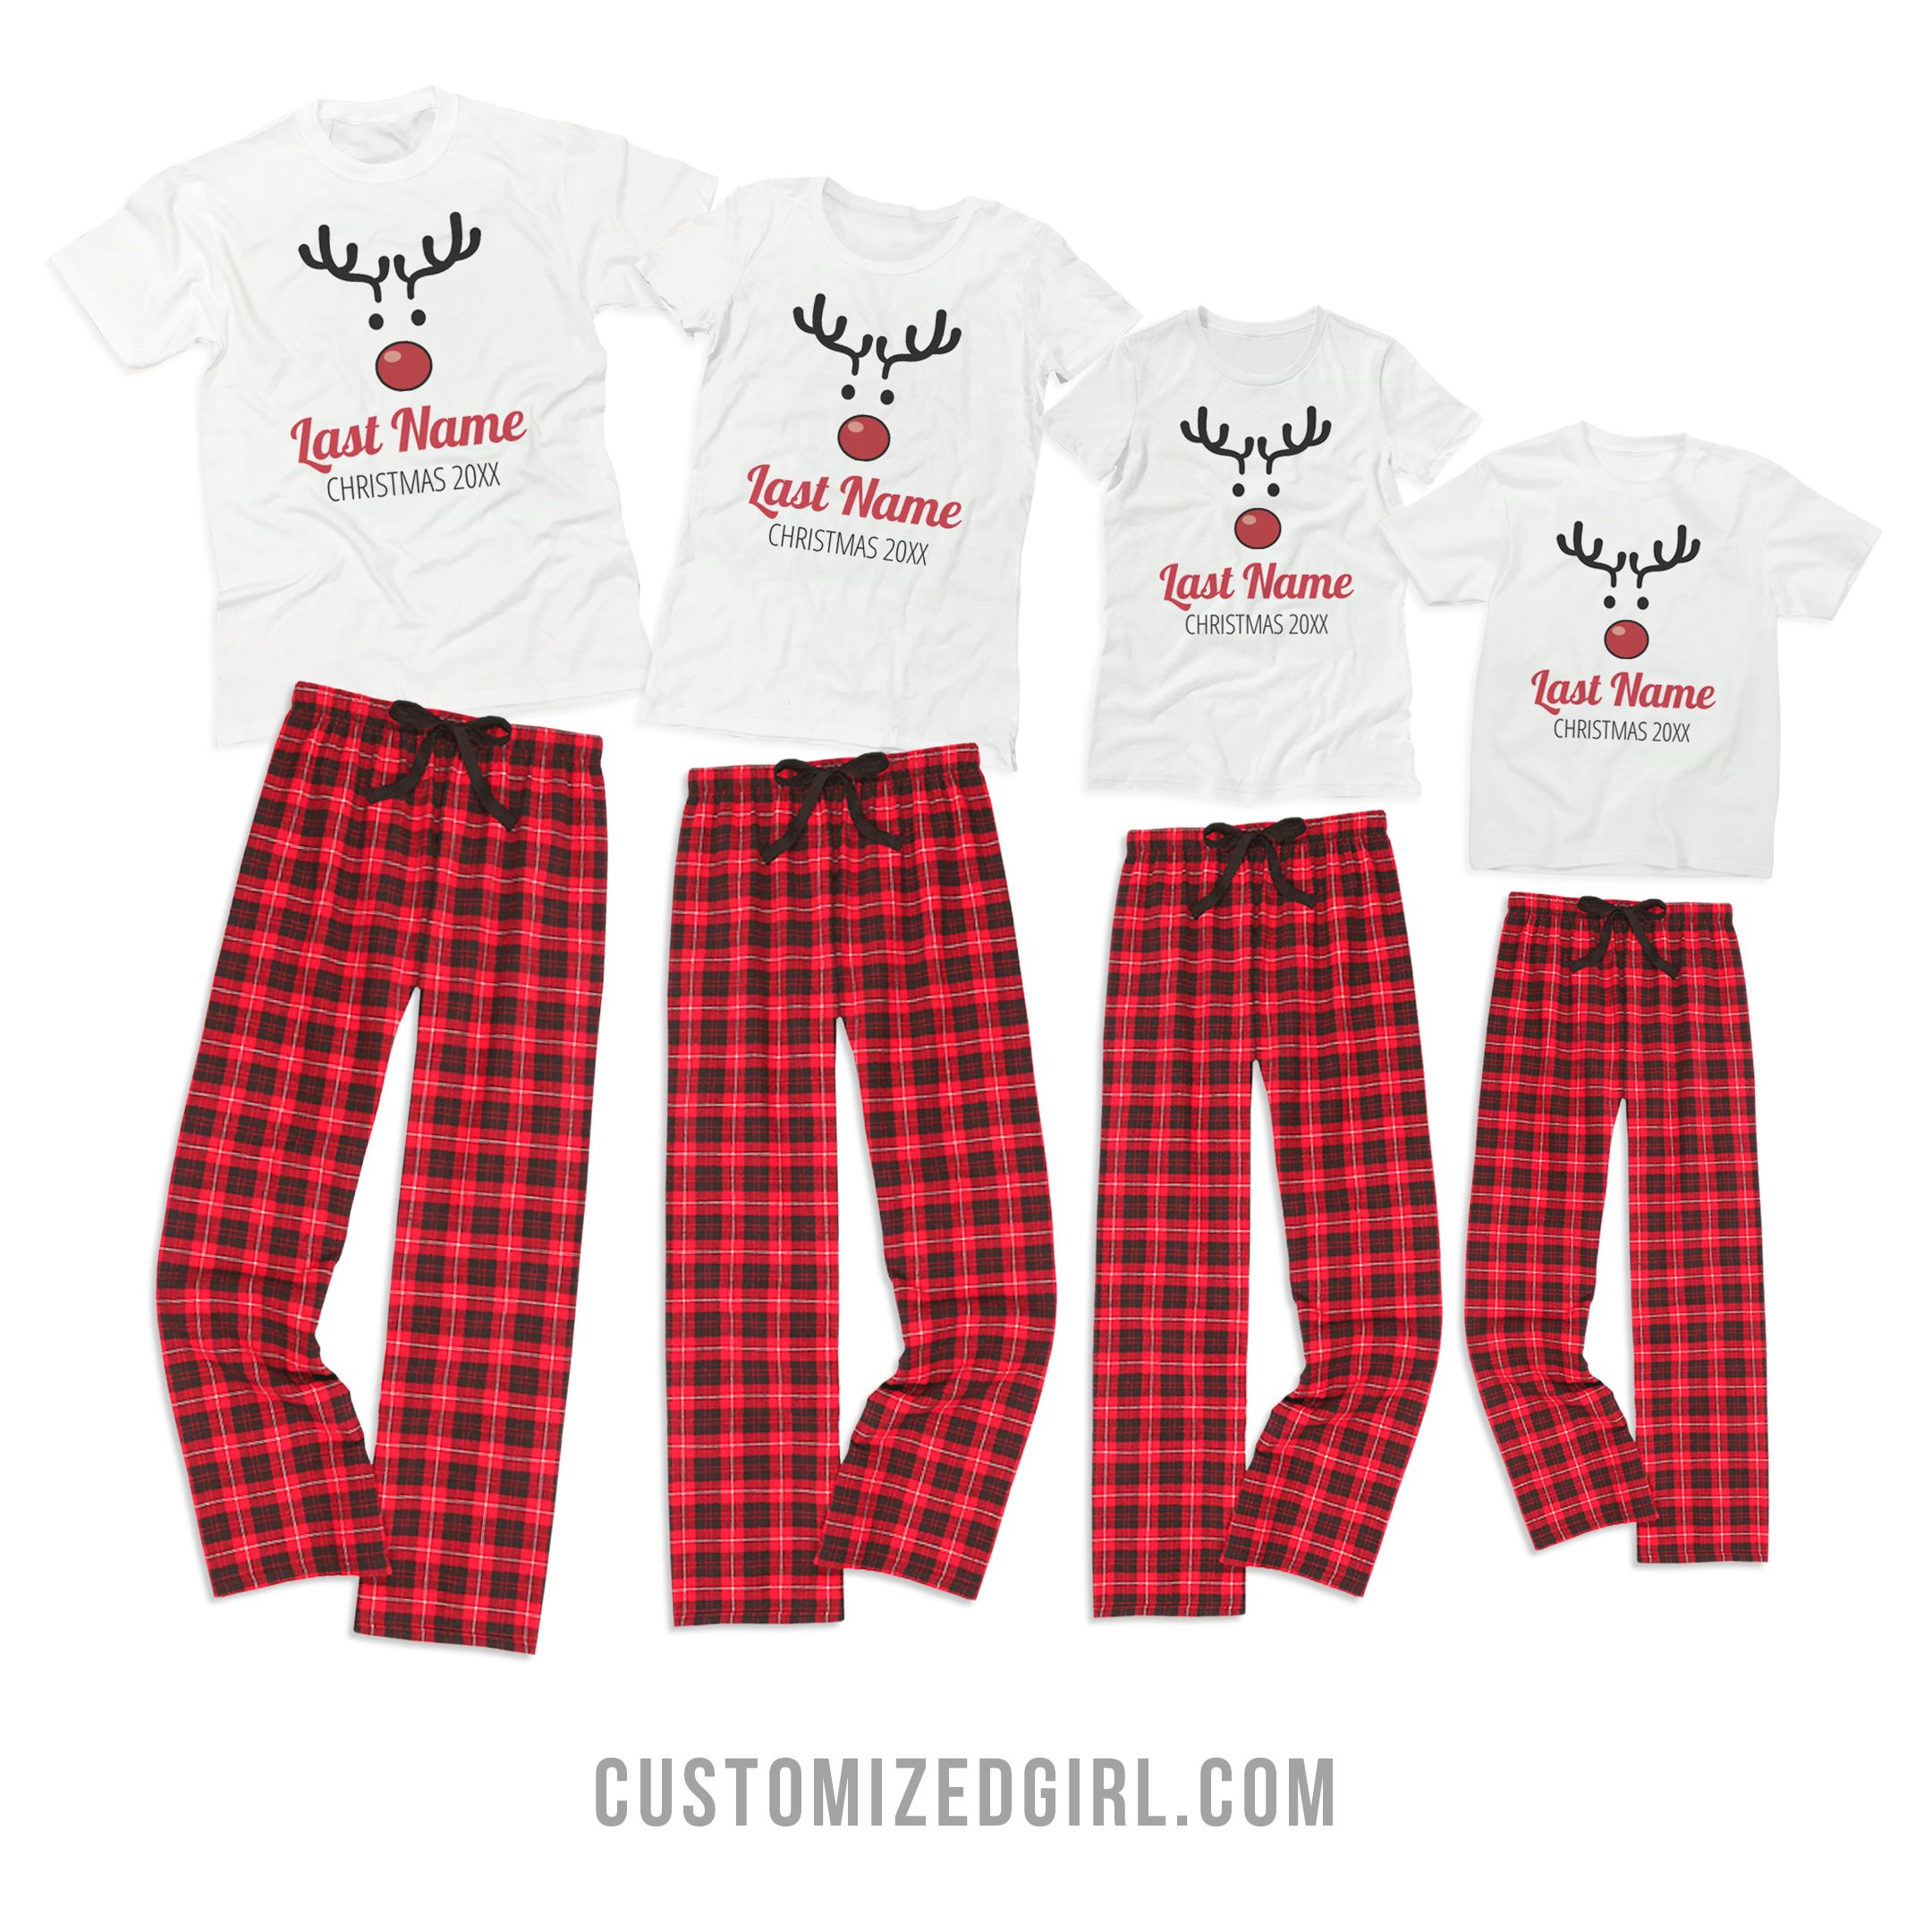 Custom Kids Rudolph Family Pajamas - Who doesn t like matching Christmas  pajamas  Get your family together and customize these with your last name  and the ... 4df91d310